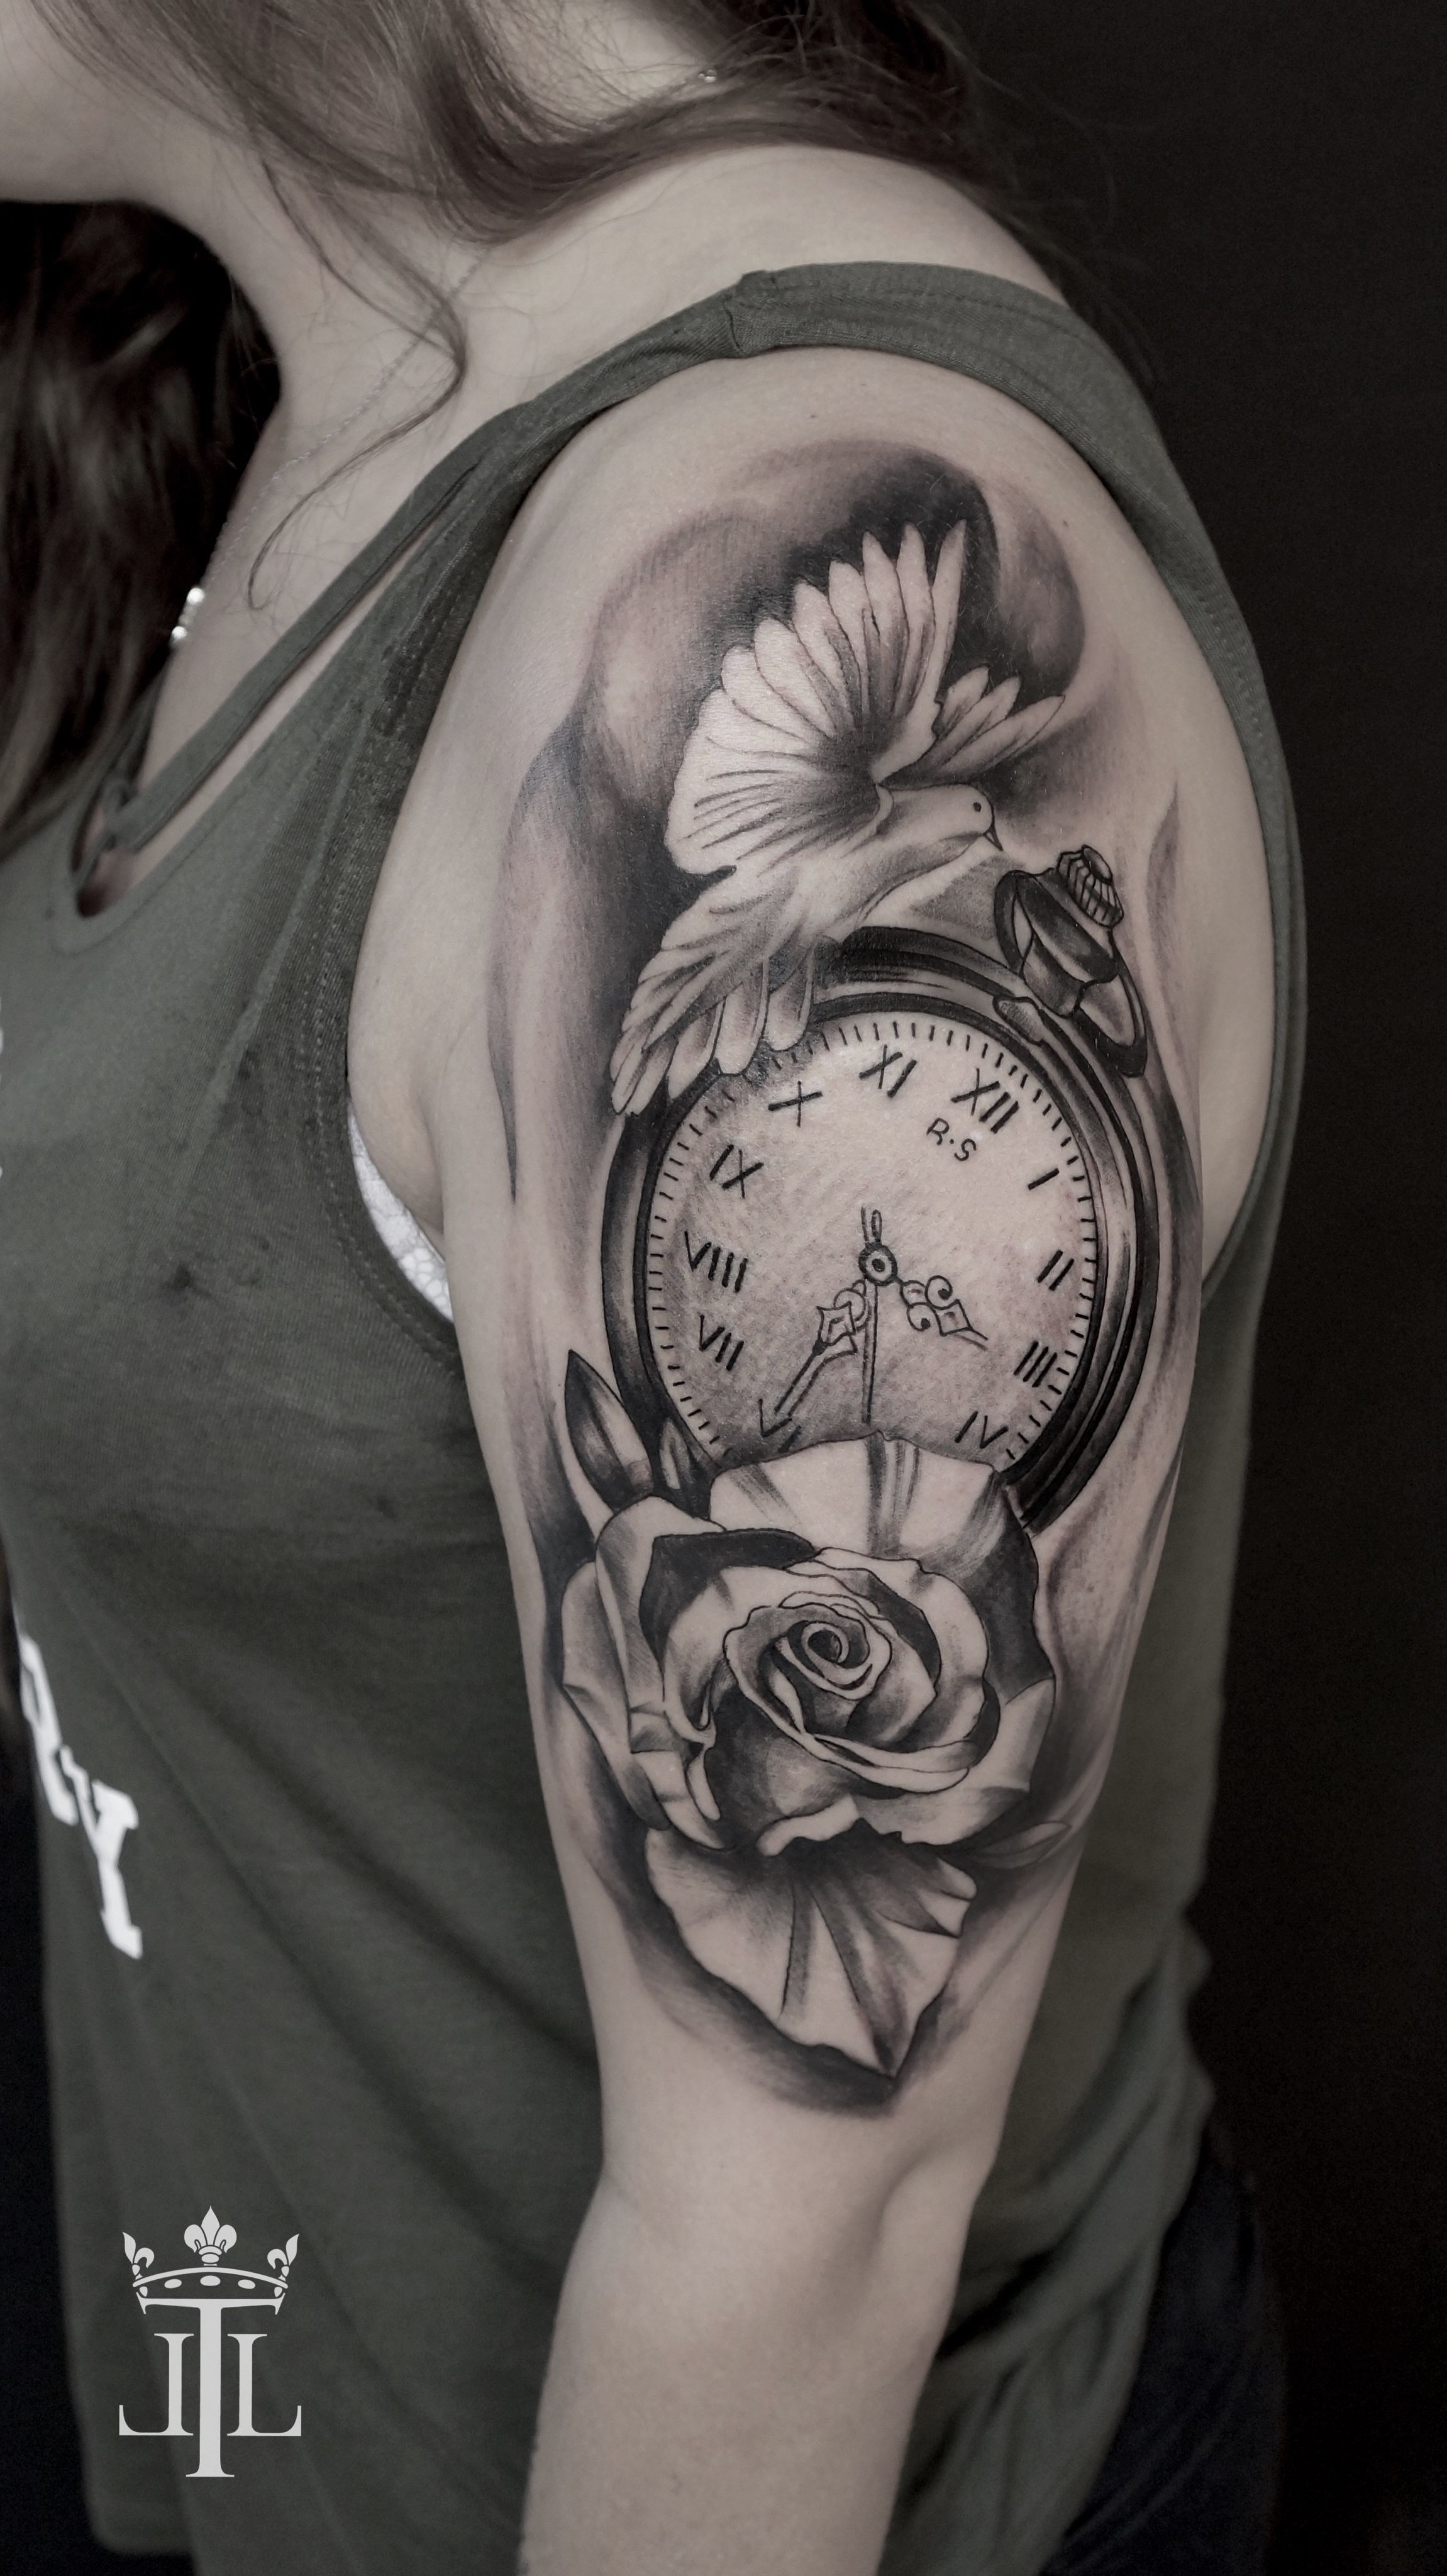 Realistic Compass Tattoo With A Black And White Rose And A Bird By Lebende Legend Schwarze Tattoos Tatowierungen Tattoo Armel Frauen